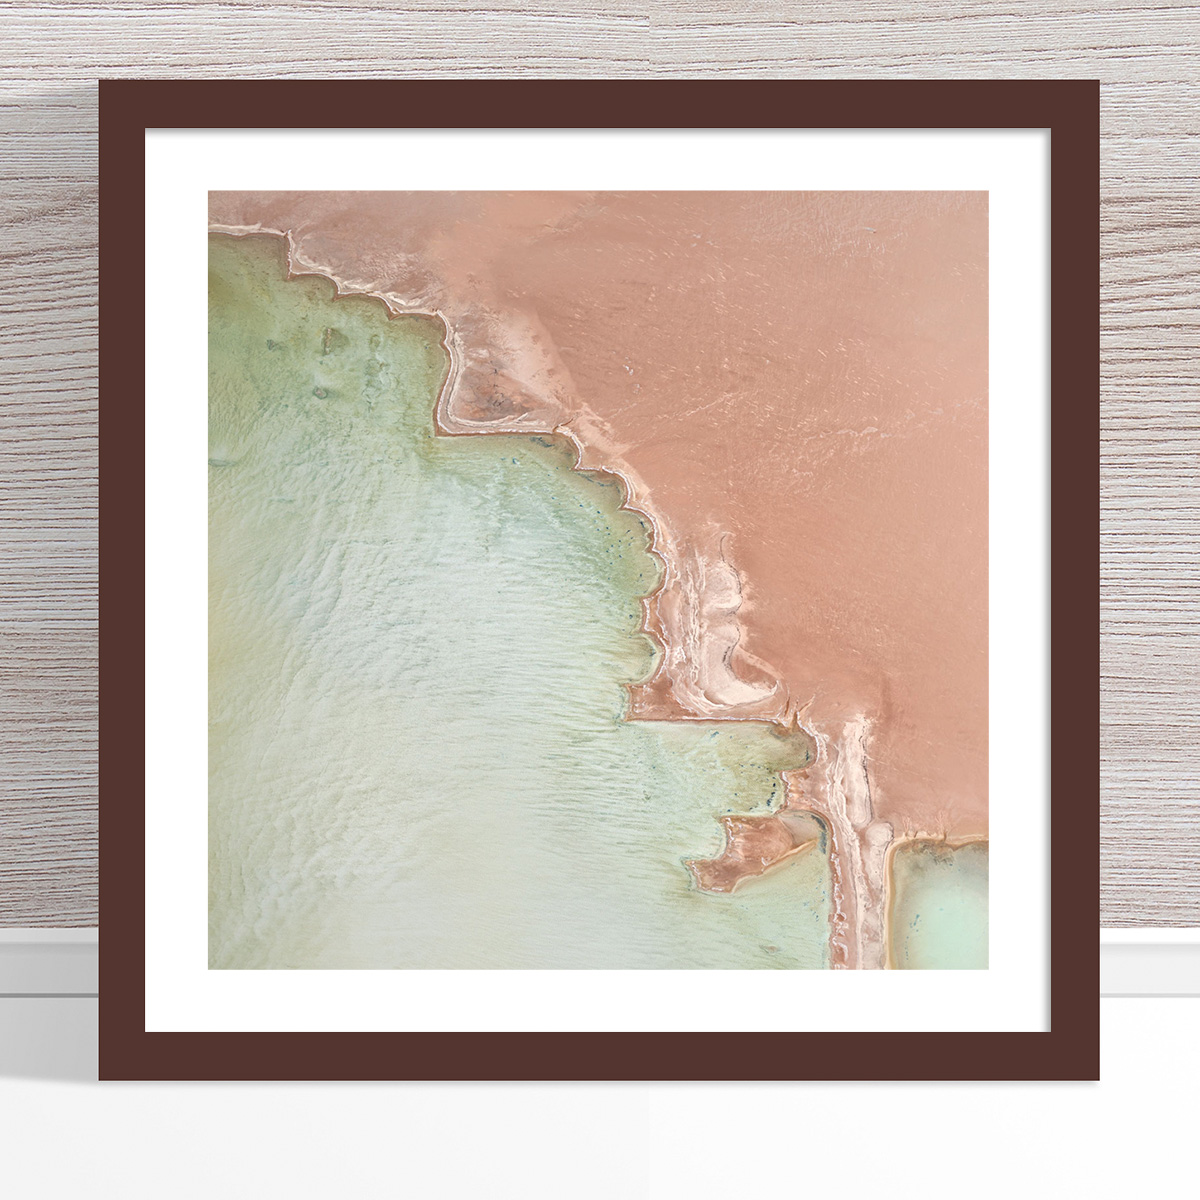 Chris Saunders - 'Aerial Salt 049' Dark Frame